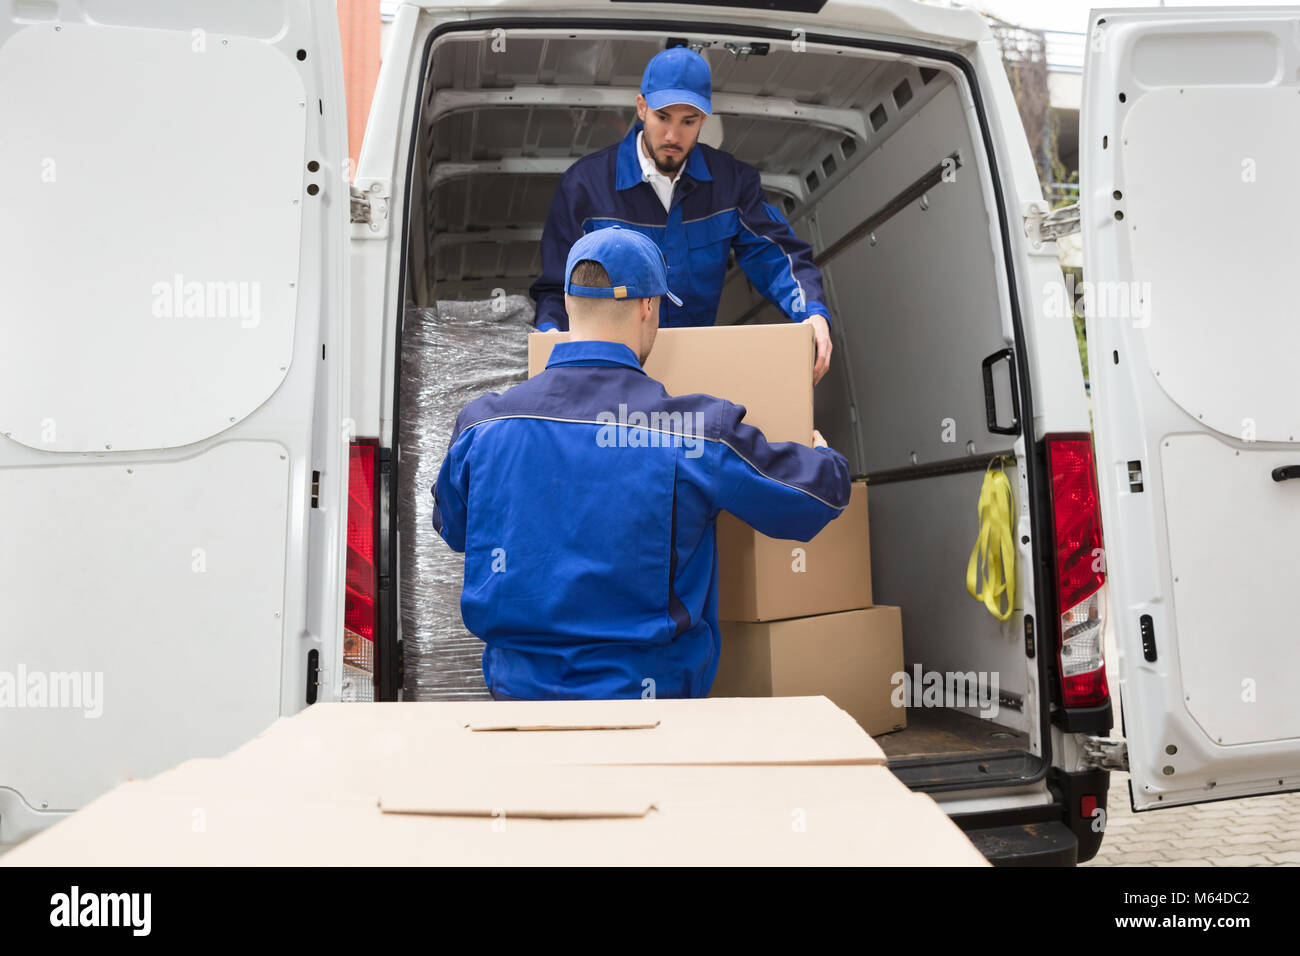 Two Young Male Movers Carrying Cardboard Box From Truck - Stock Image